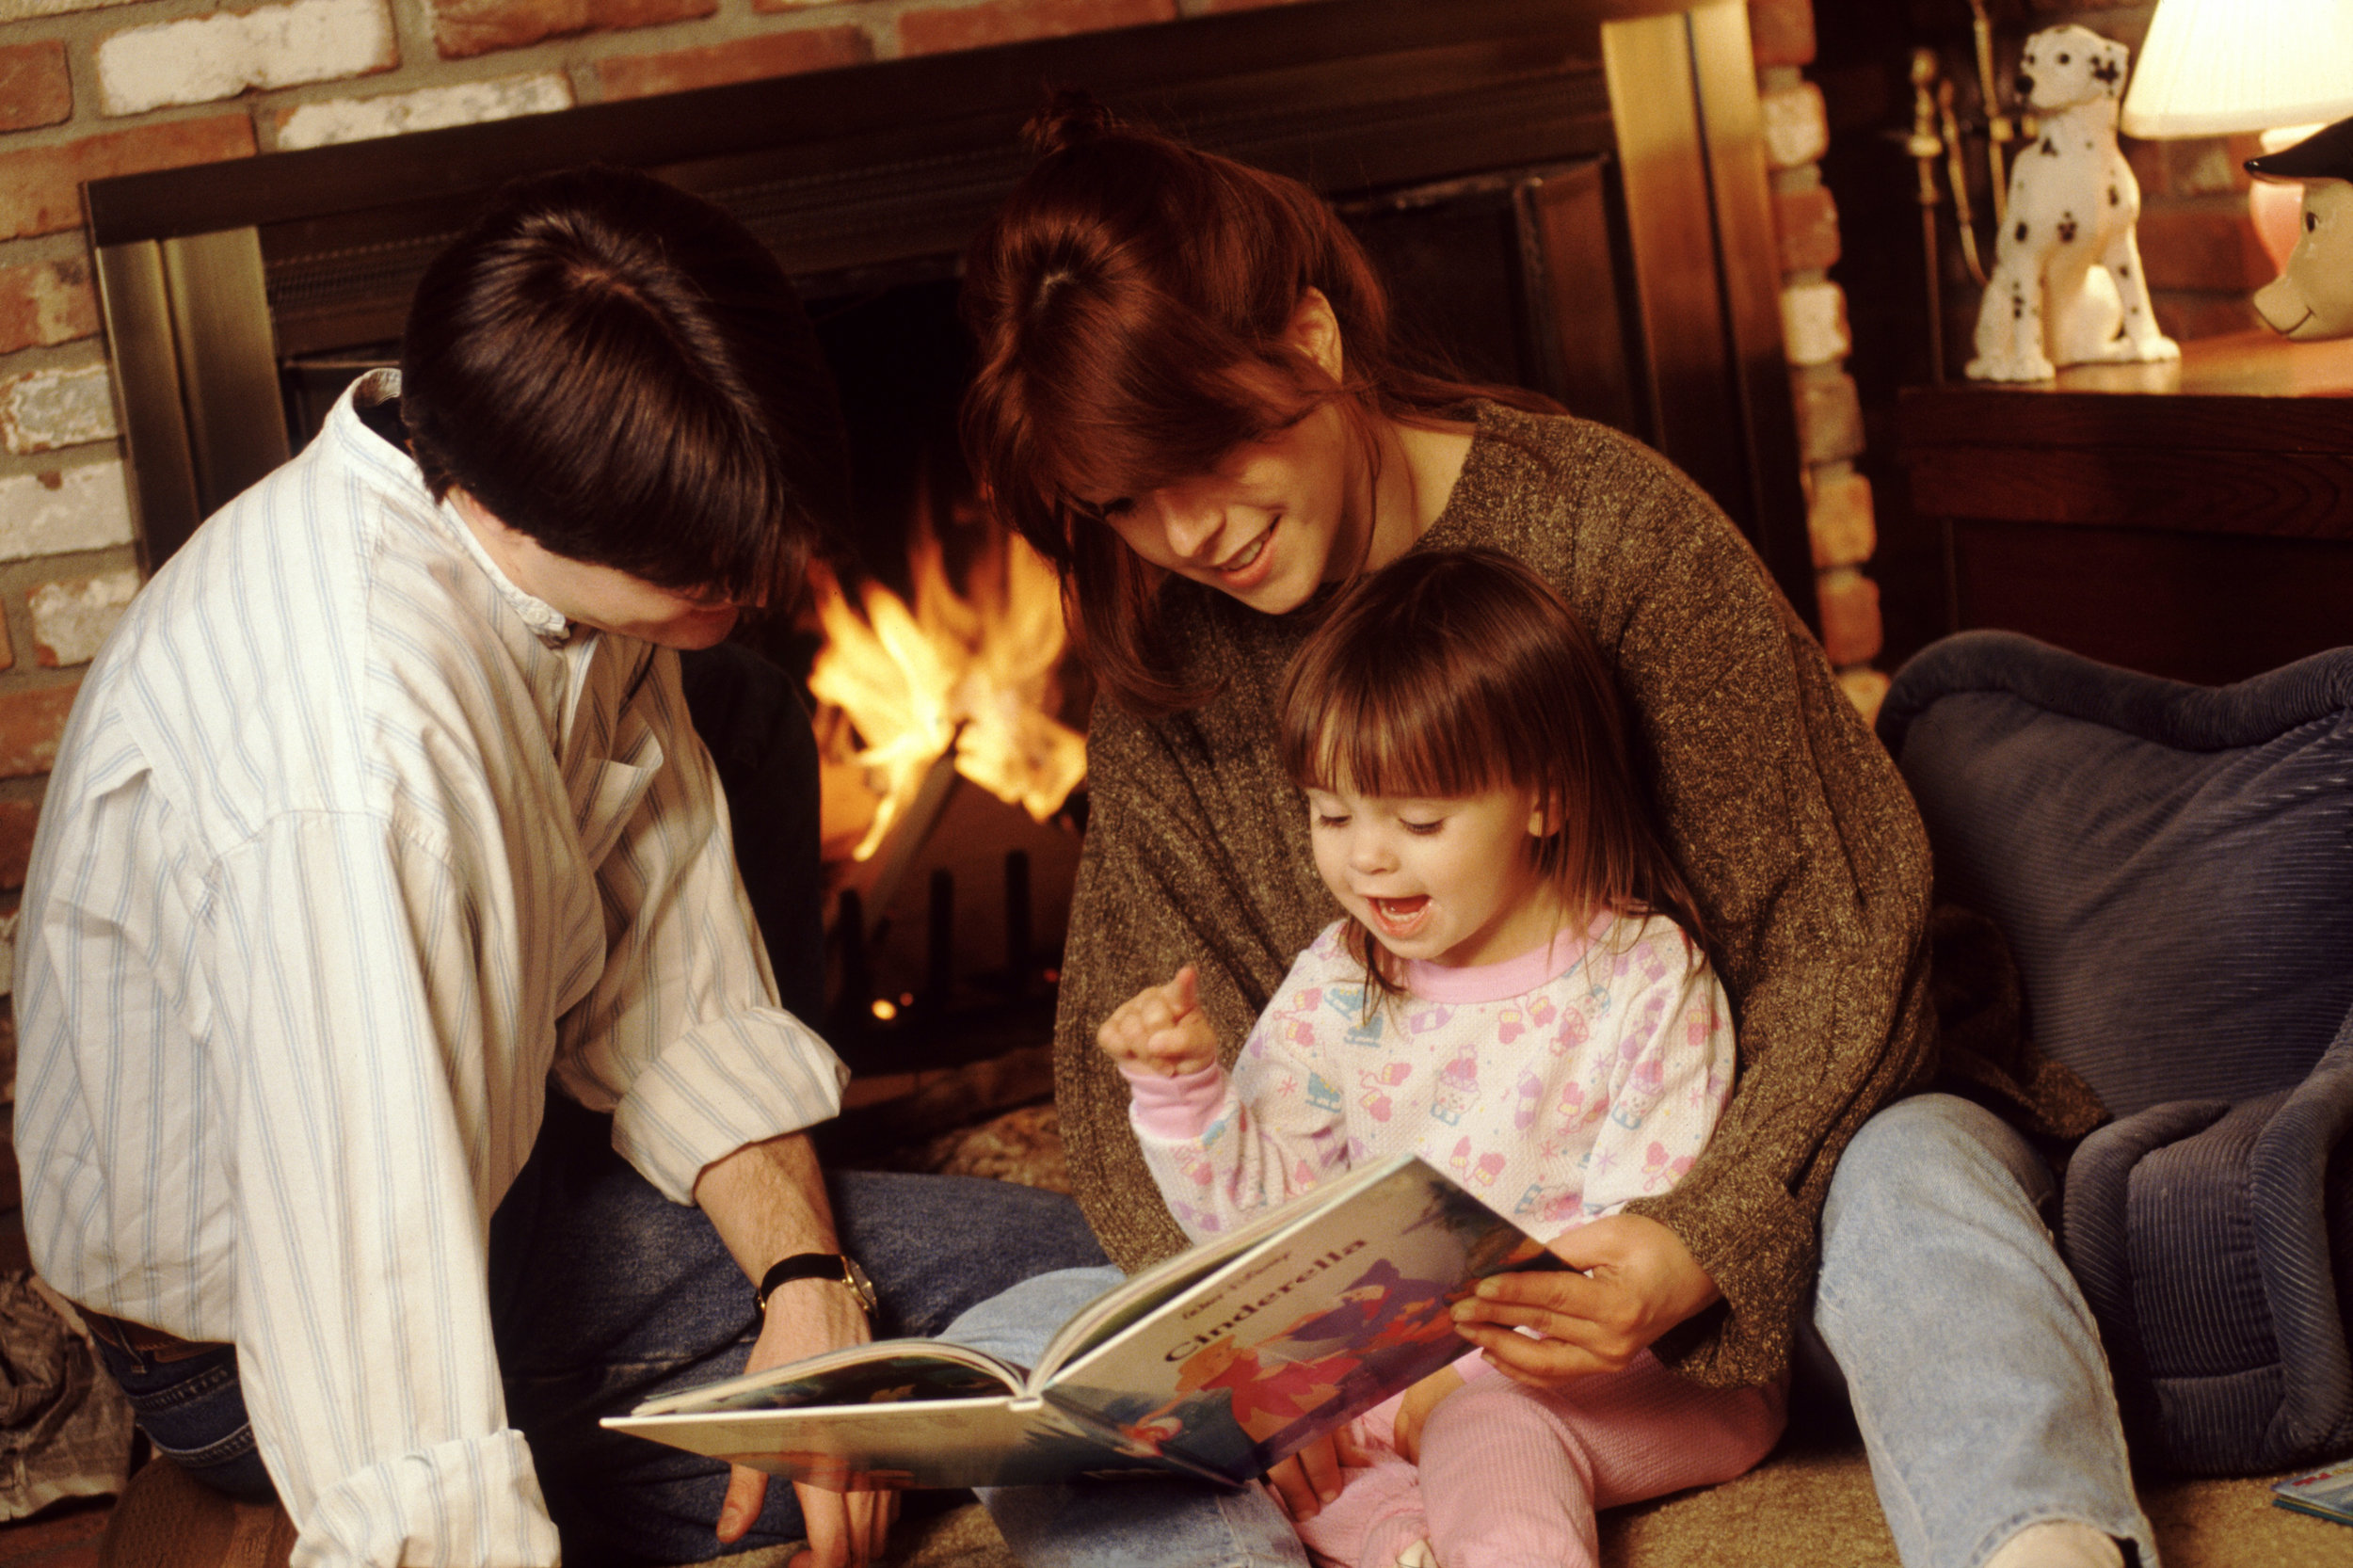 Total Temperature Control can save you money on energy bills. Call today for highly rated heating and cooling service.